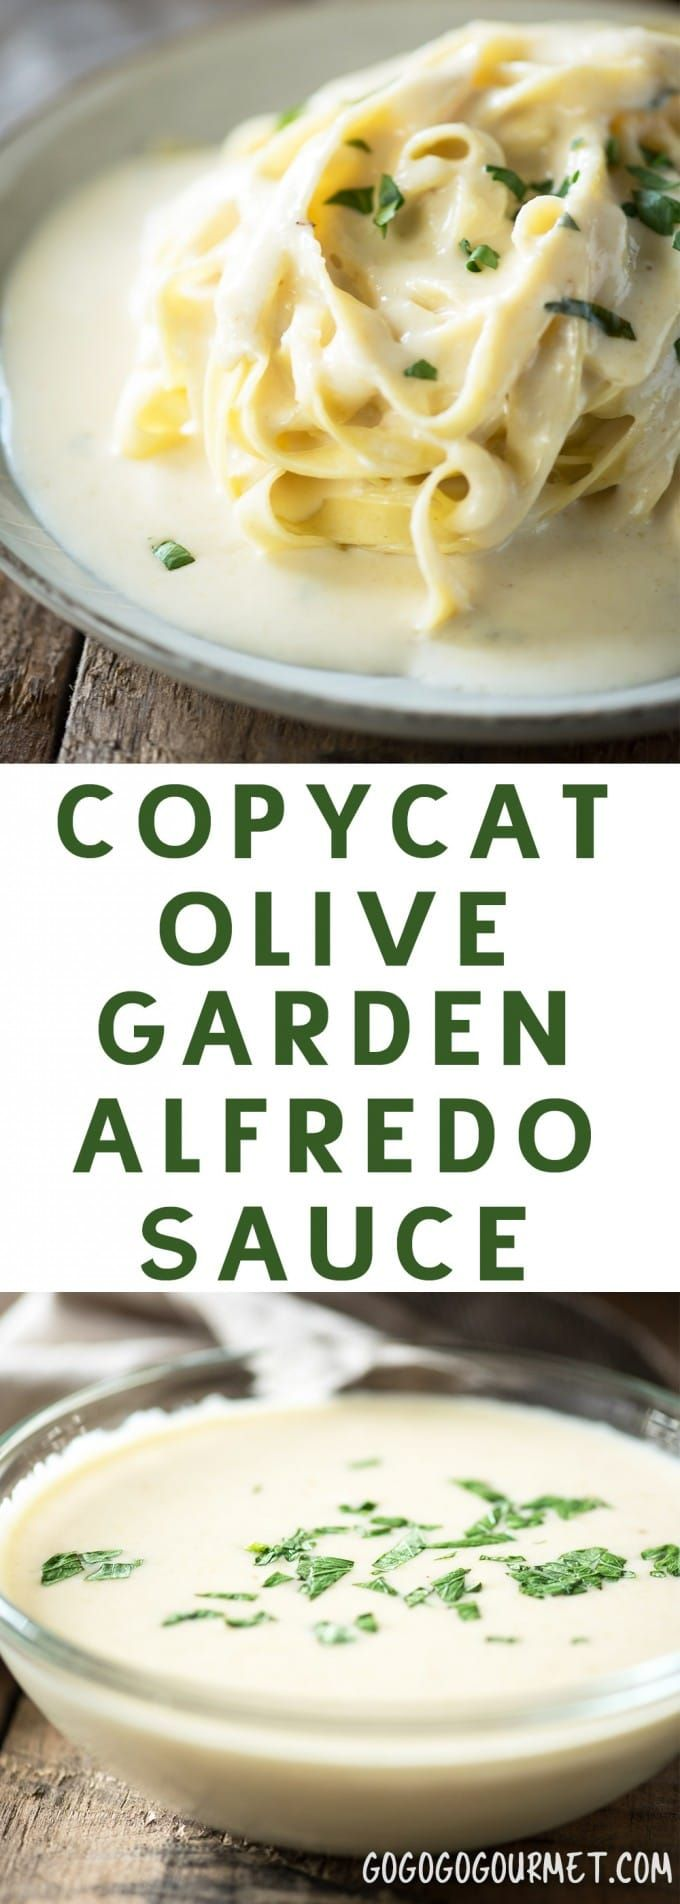 This Copycat Olive Garden Alfredo Sauce is a fast and easy dinner, and even better than the original! The perfect alfredo sauce recipe. |  via @gogogogourmet